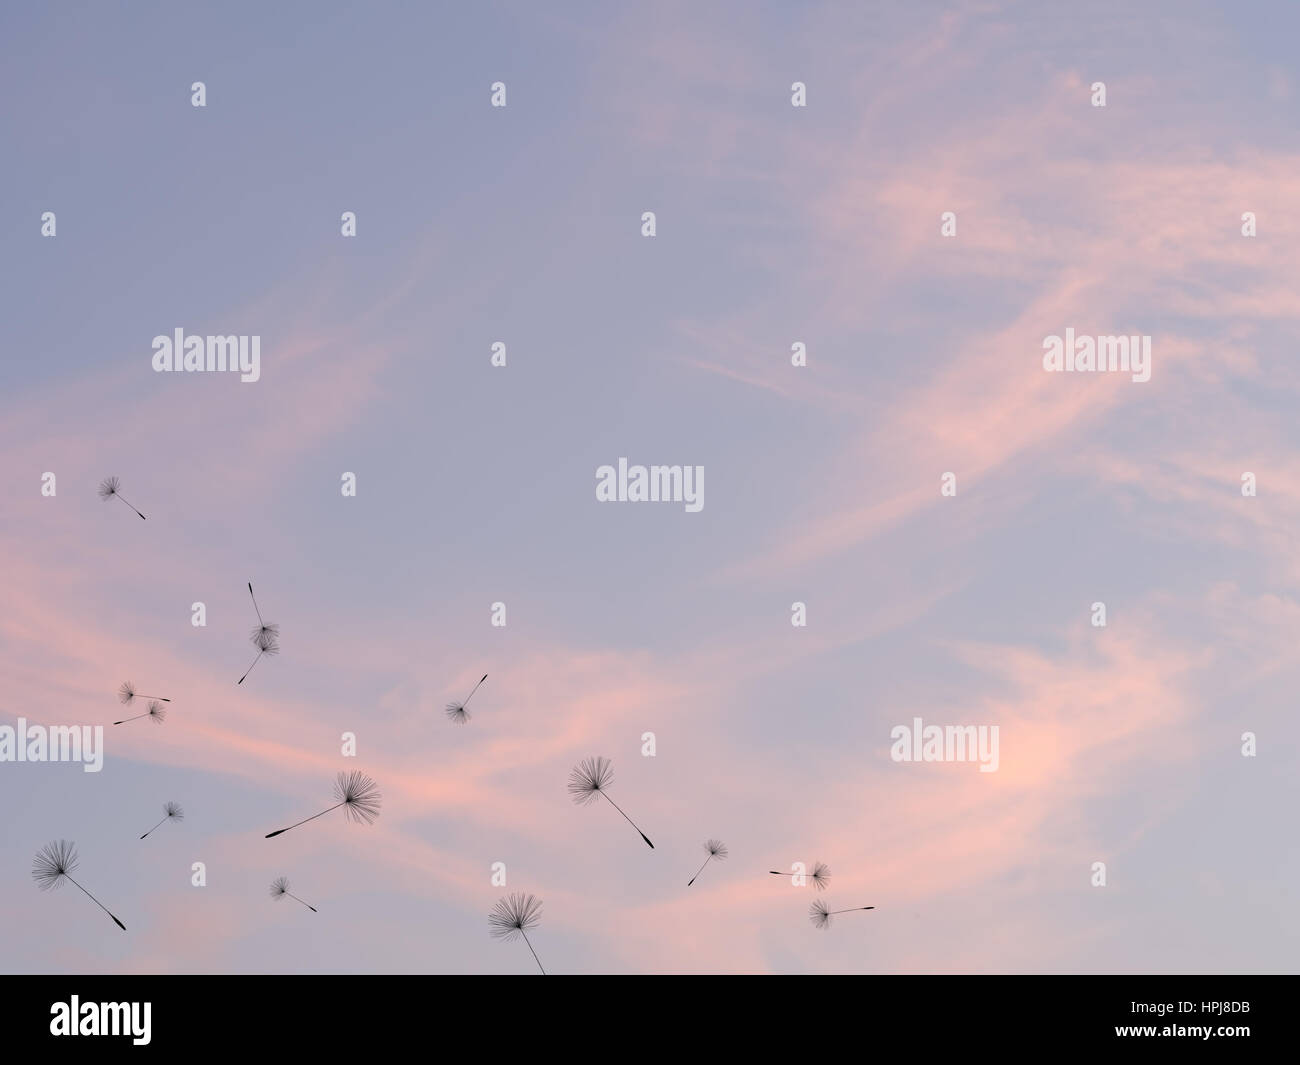 Dandelion seeds and sunset sky,time passing, people passing concept. The end of the day background. - Stock Image